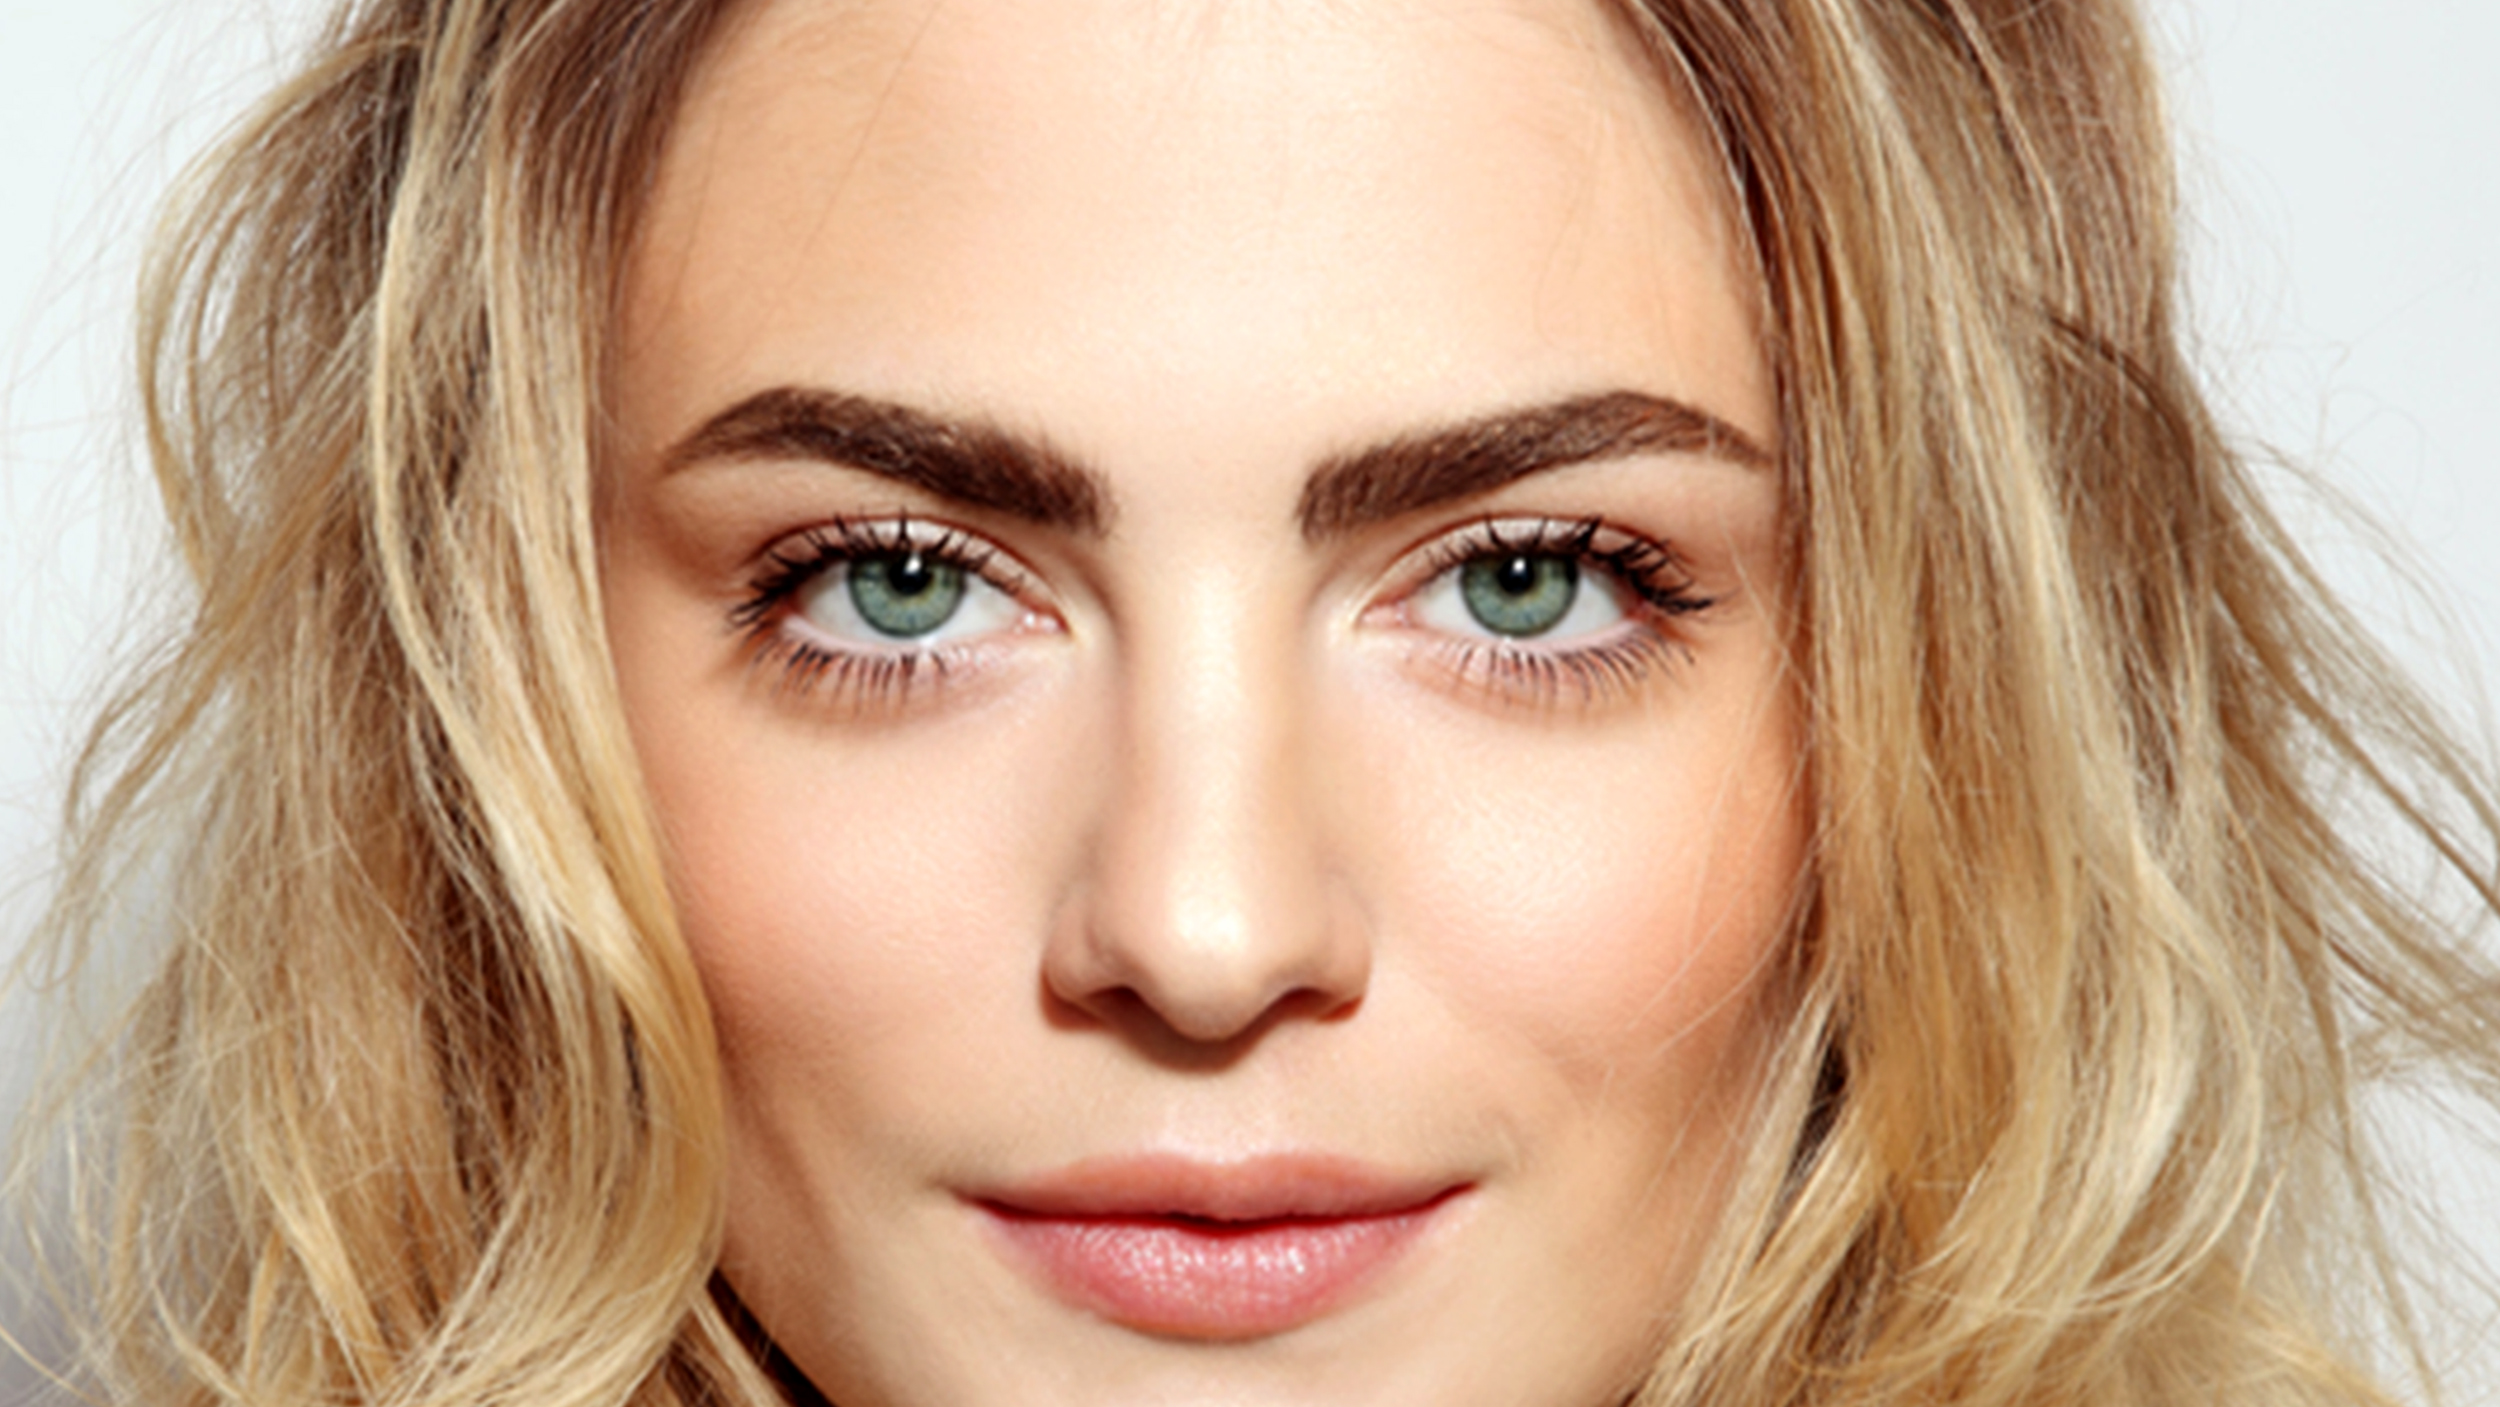 What Is Microblading What To Know About The Eyebrow Tattoo Trend